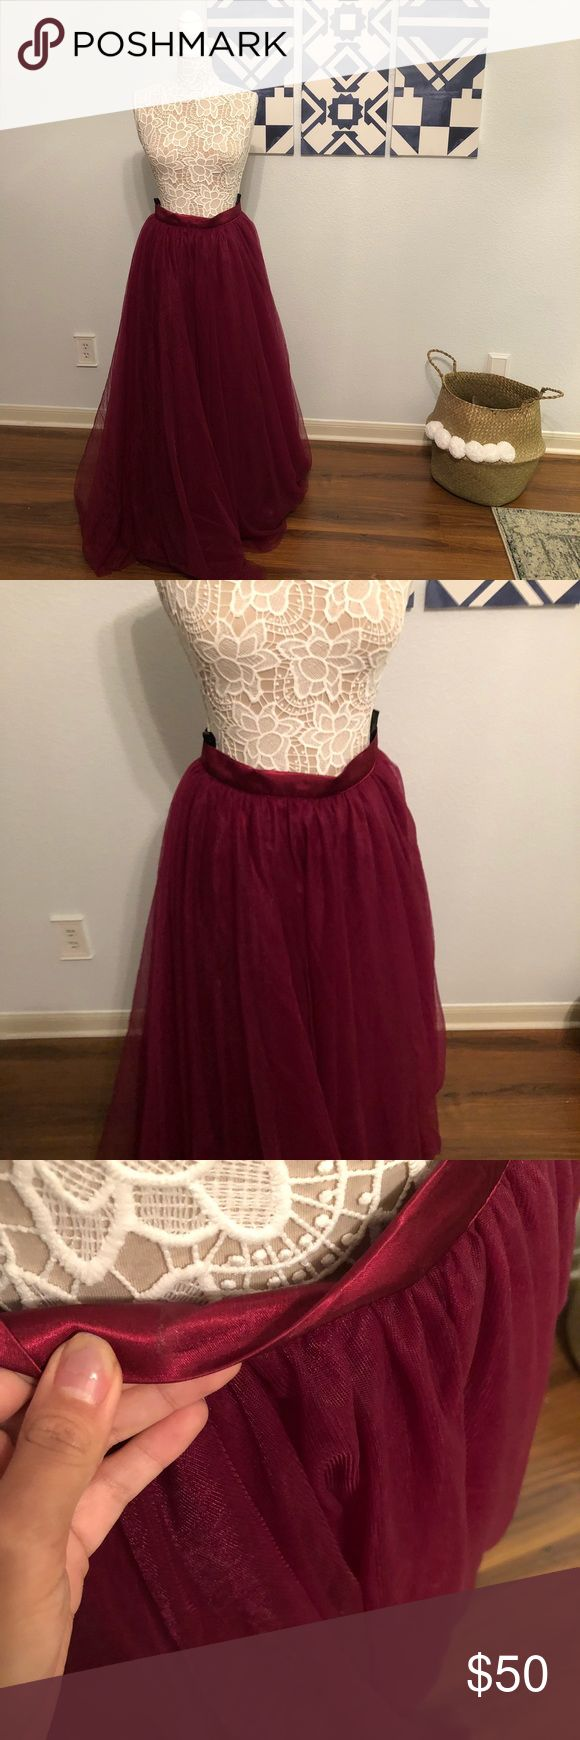 Maroon Tulle Skirt Maroon tulle skirt, worn once for a wedding, has a bit or tape residue. Great for events and looks great with crop tops! Skirts Maxi